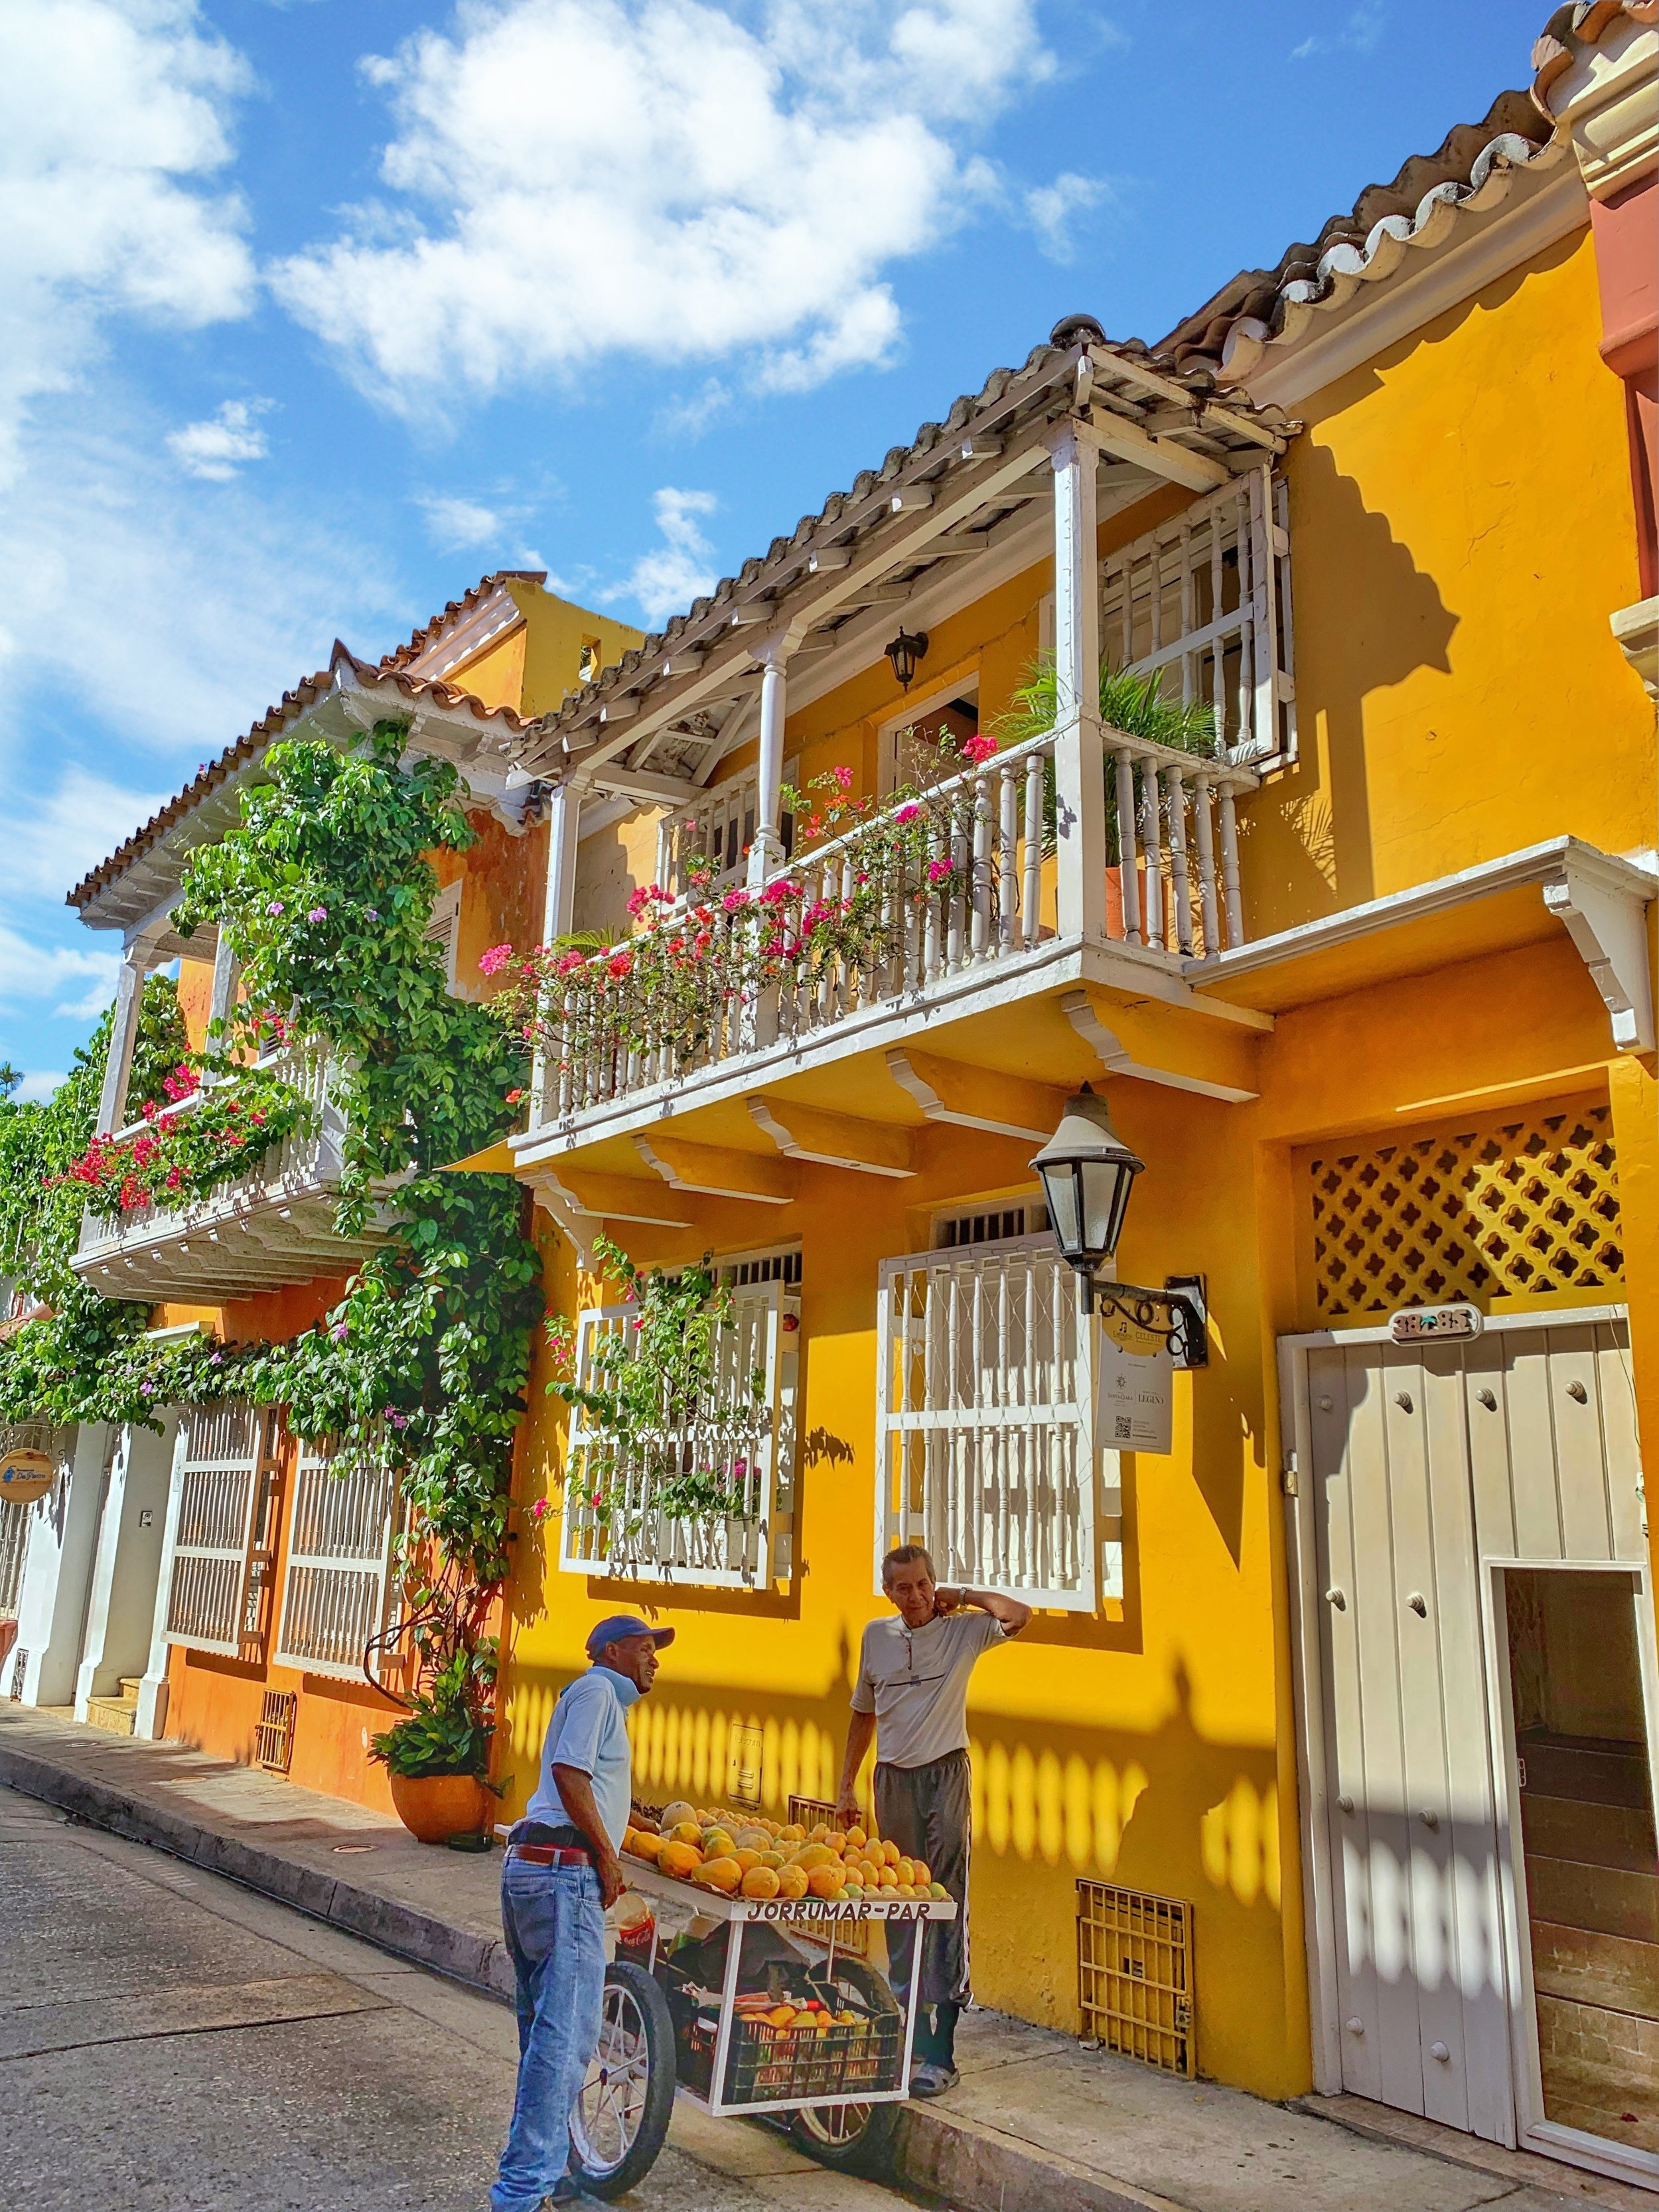 Each house was as colorful as the next with street vendors selling fresh and succulent fruits.